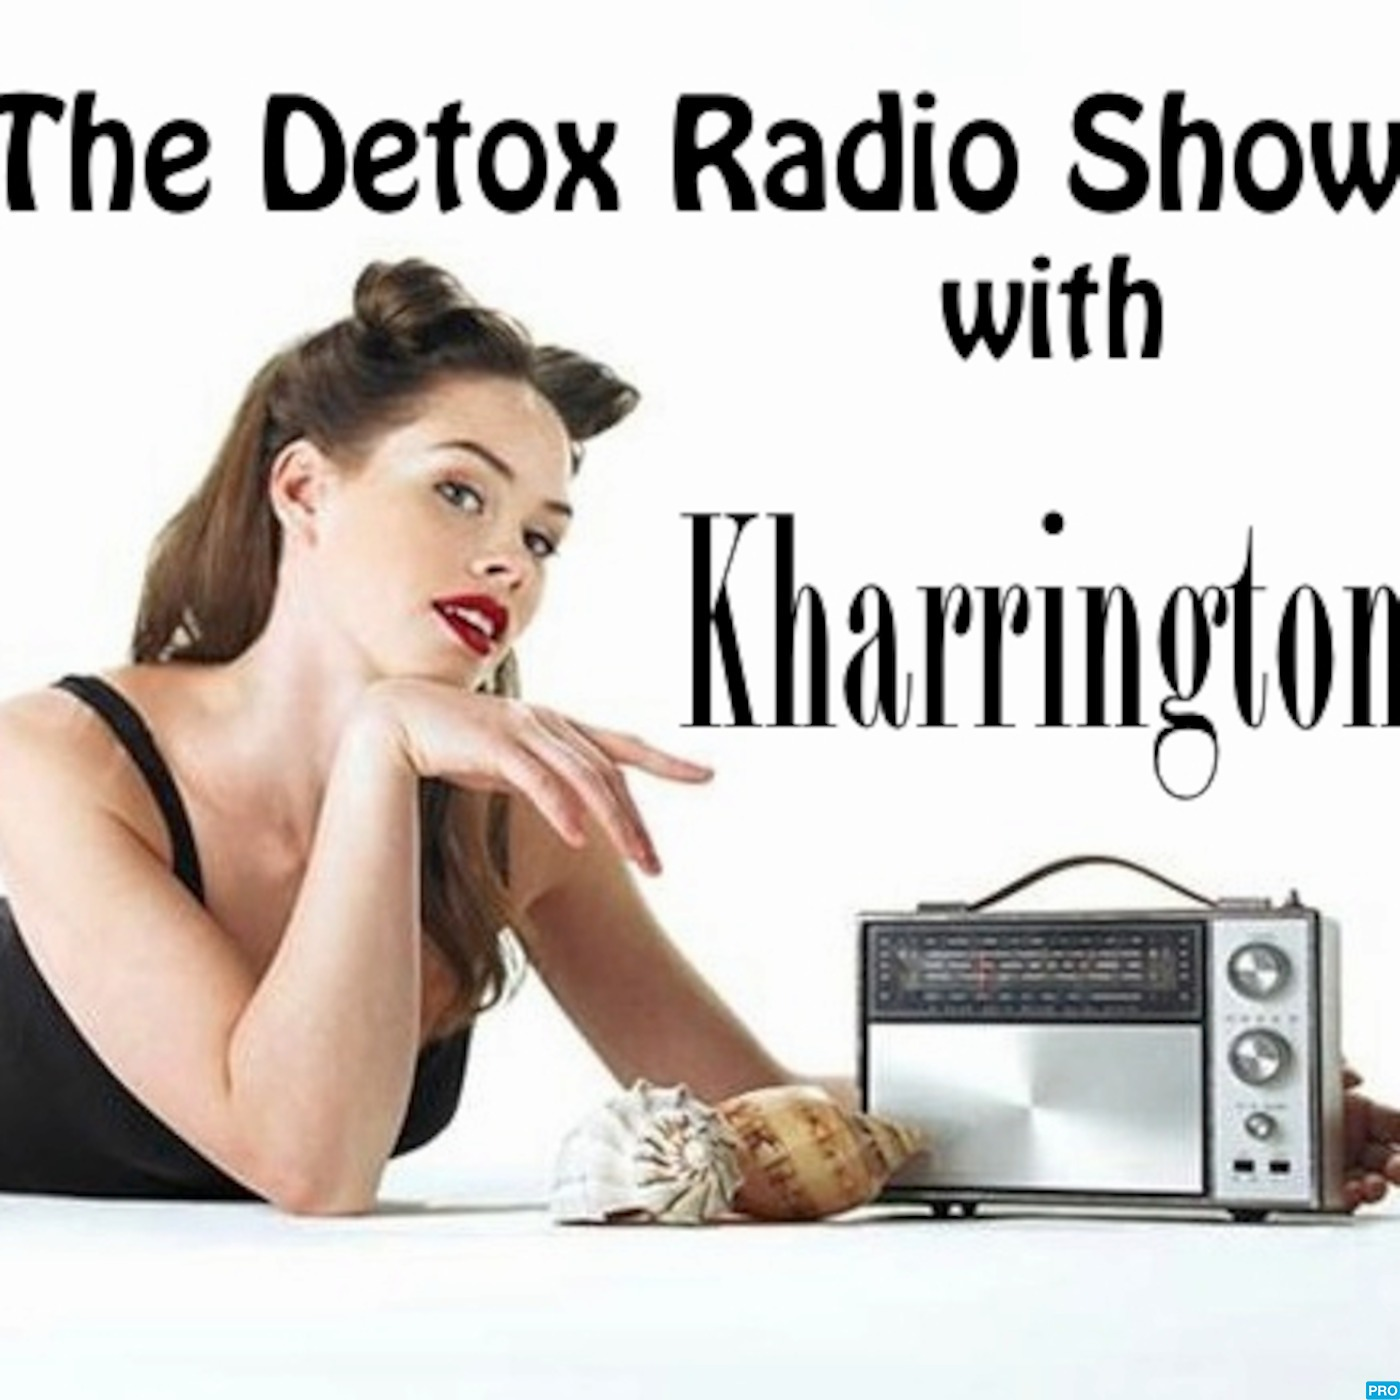 Kharrington - The Detox Radio Show